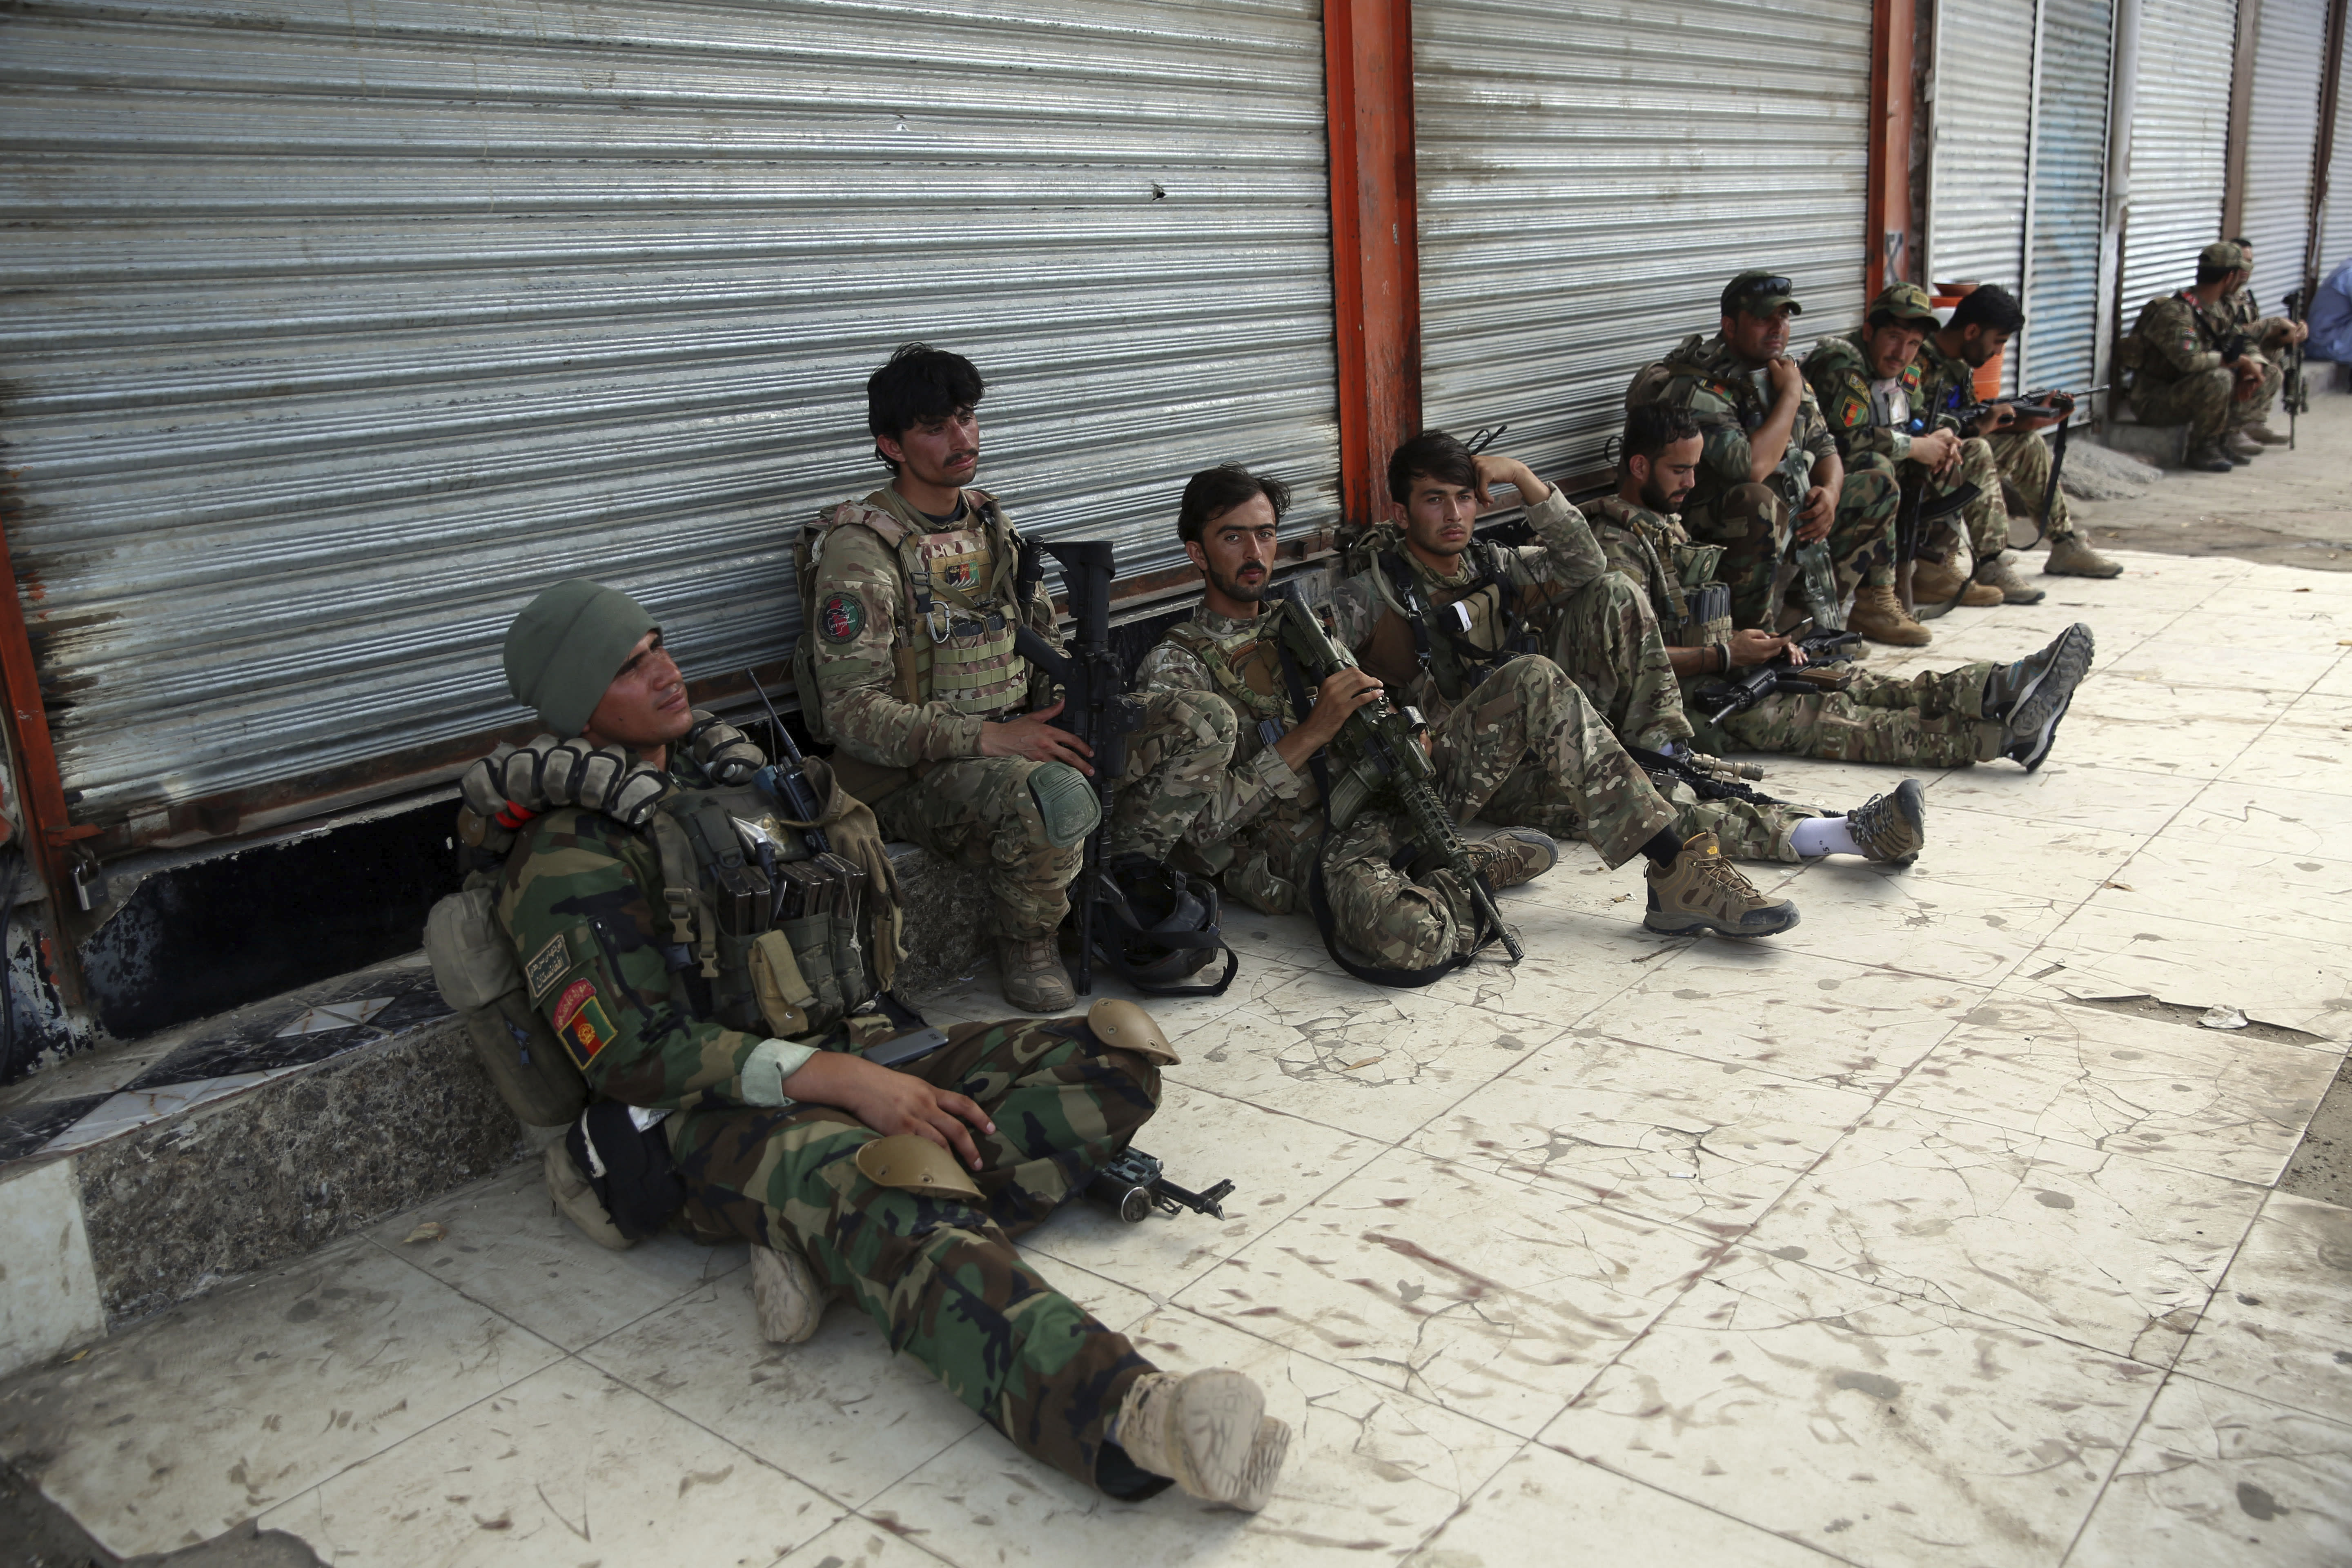 Afghan security personnels rest in front of a prison after an attack in the city of Jalalabad, east of Kabul, Afghanistan, Monday, Aug. 3, 2020. An Islamic State group attack on the prison in eastern Afghanistan holding hundreds of its members raged on Monday after killing people in fighting overnight, a local official said. (AP Photo/Rahmat Gul)